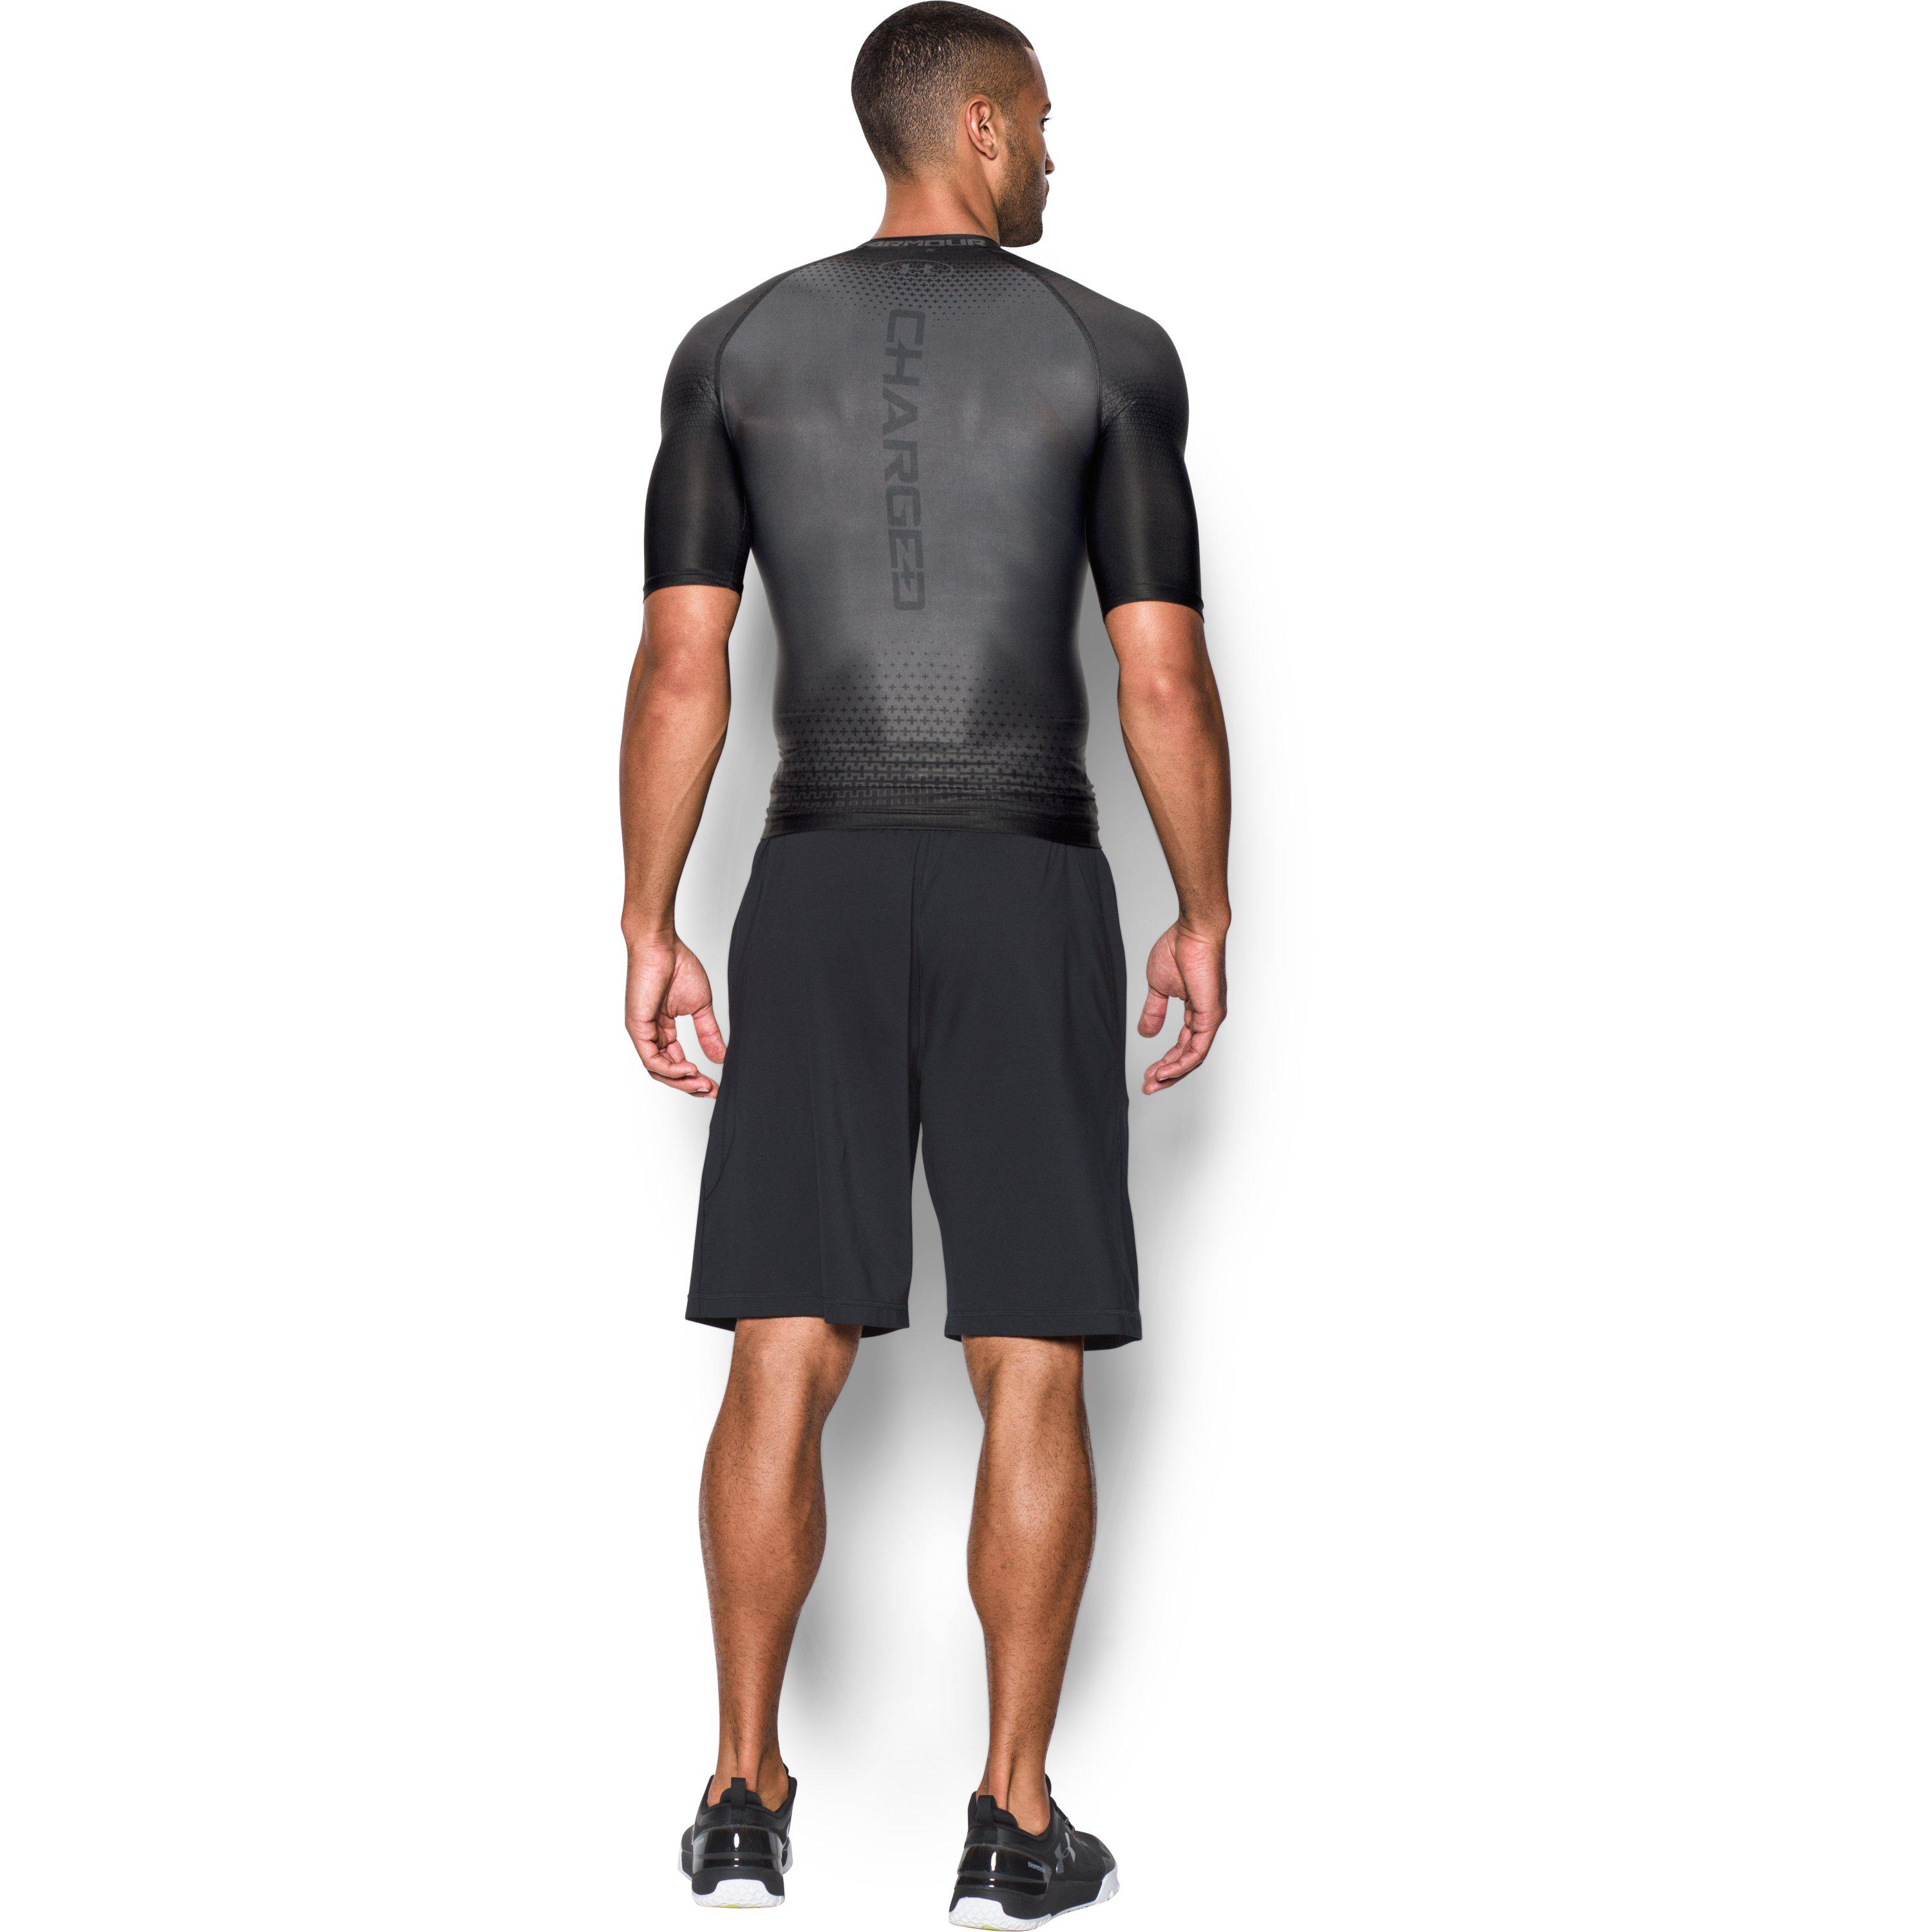 47d3f577a Under Armour Men's Ua Charged Compression Short Sleeve Shirt in ...